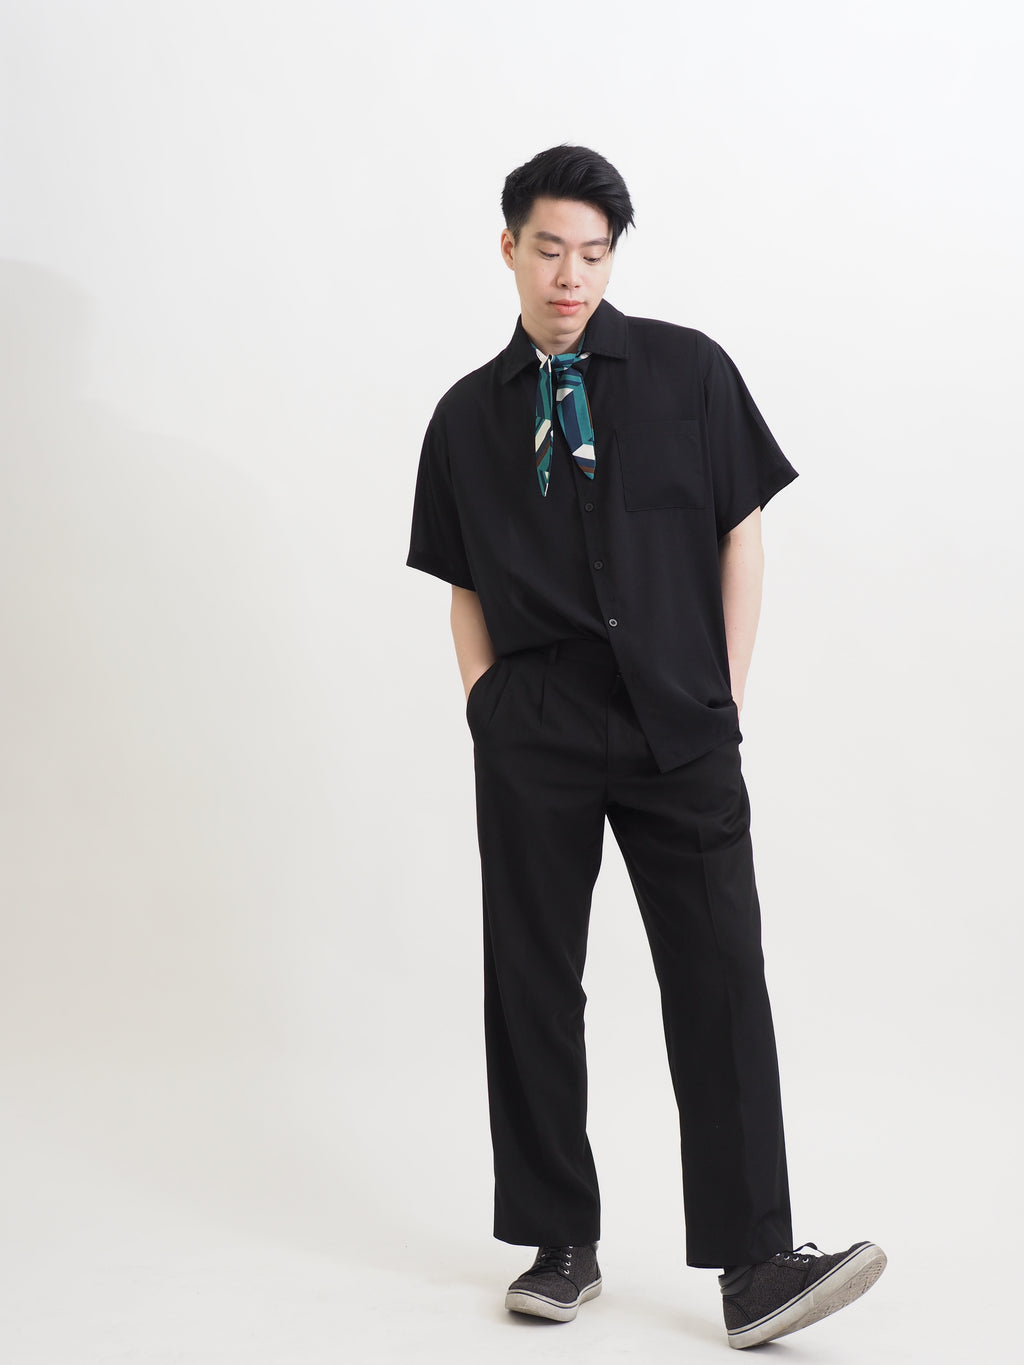 Statement Black - Casual Short Sleeve Shirt